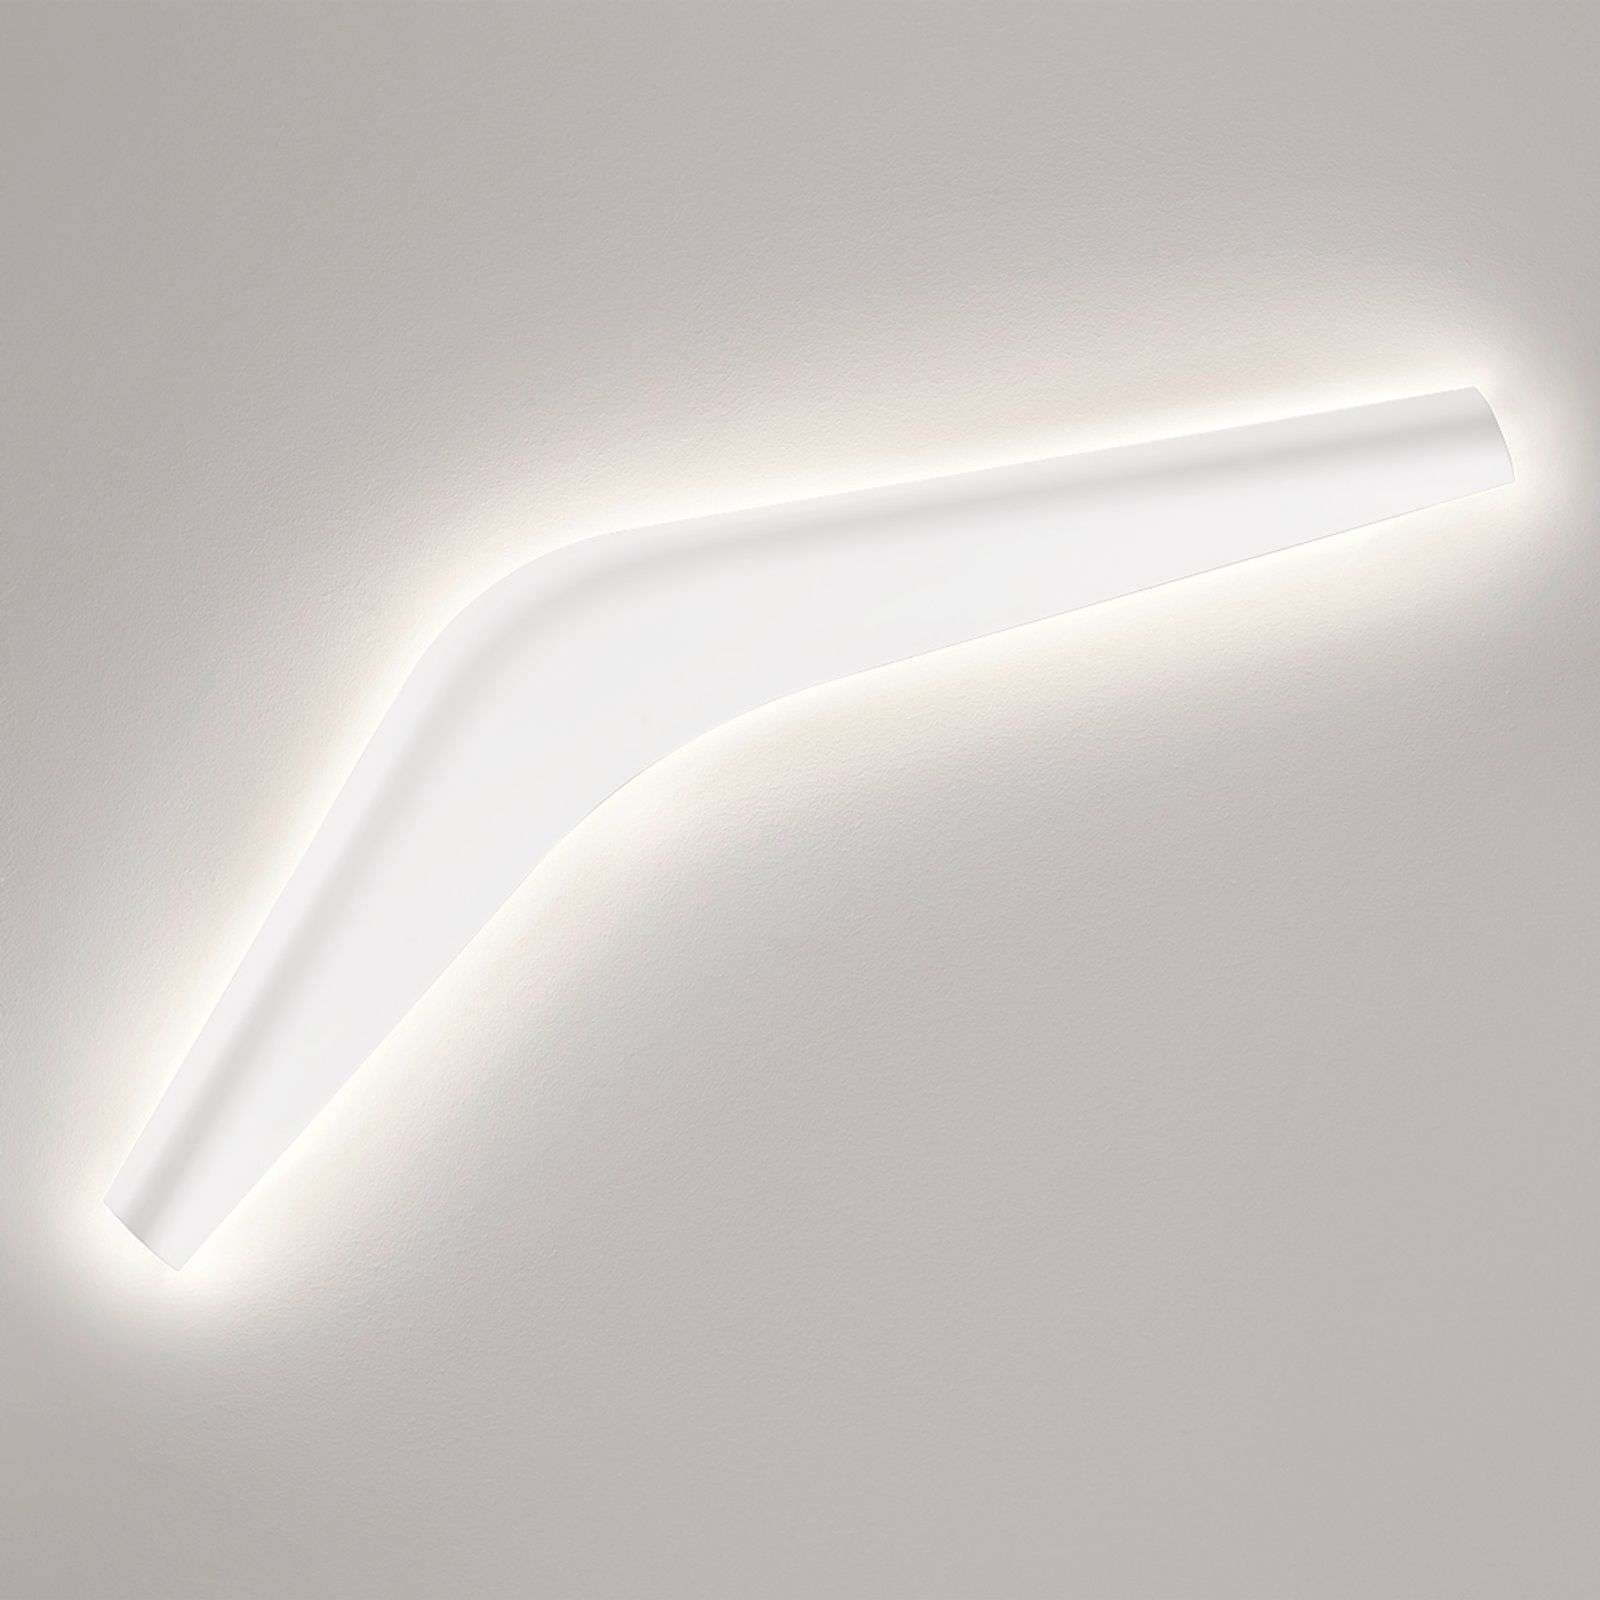 Applique LED Boomy, 100 cm